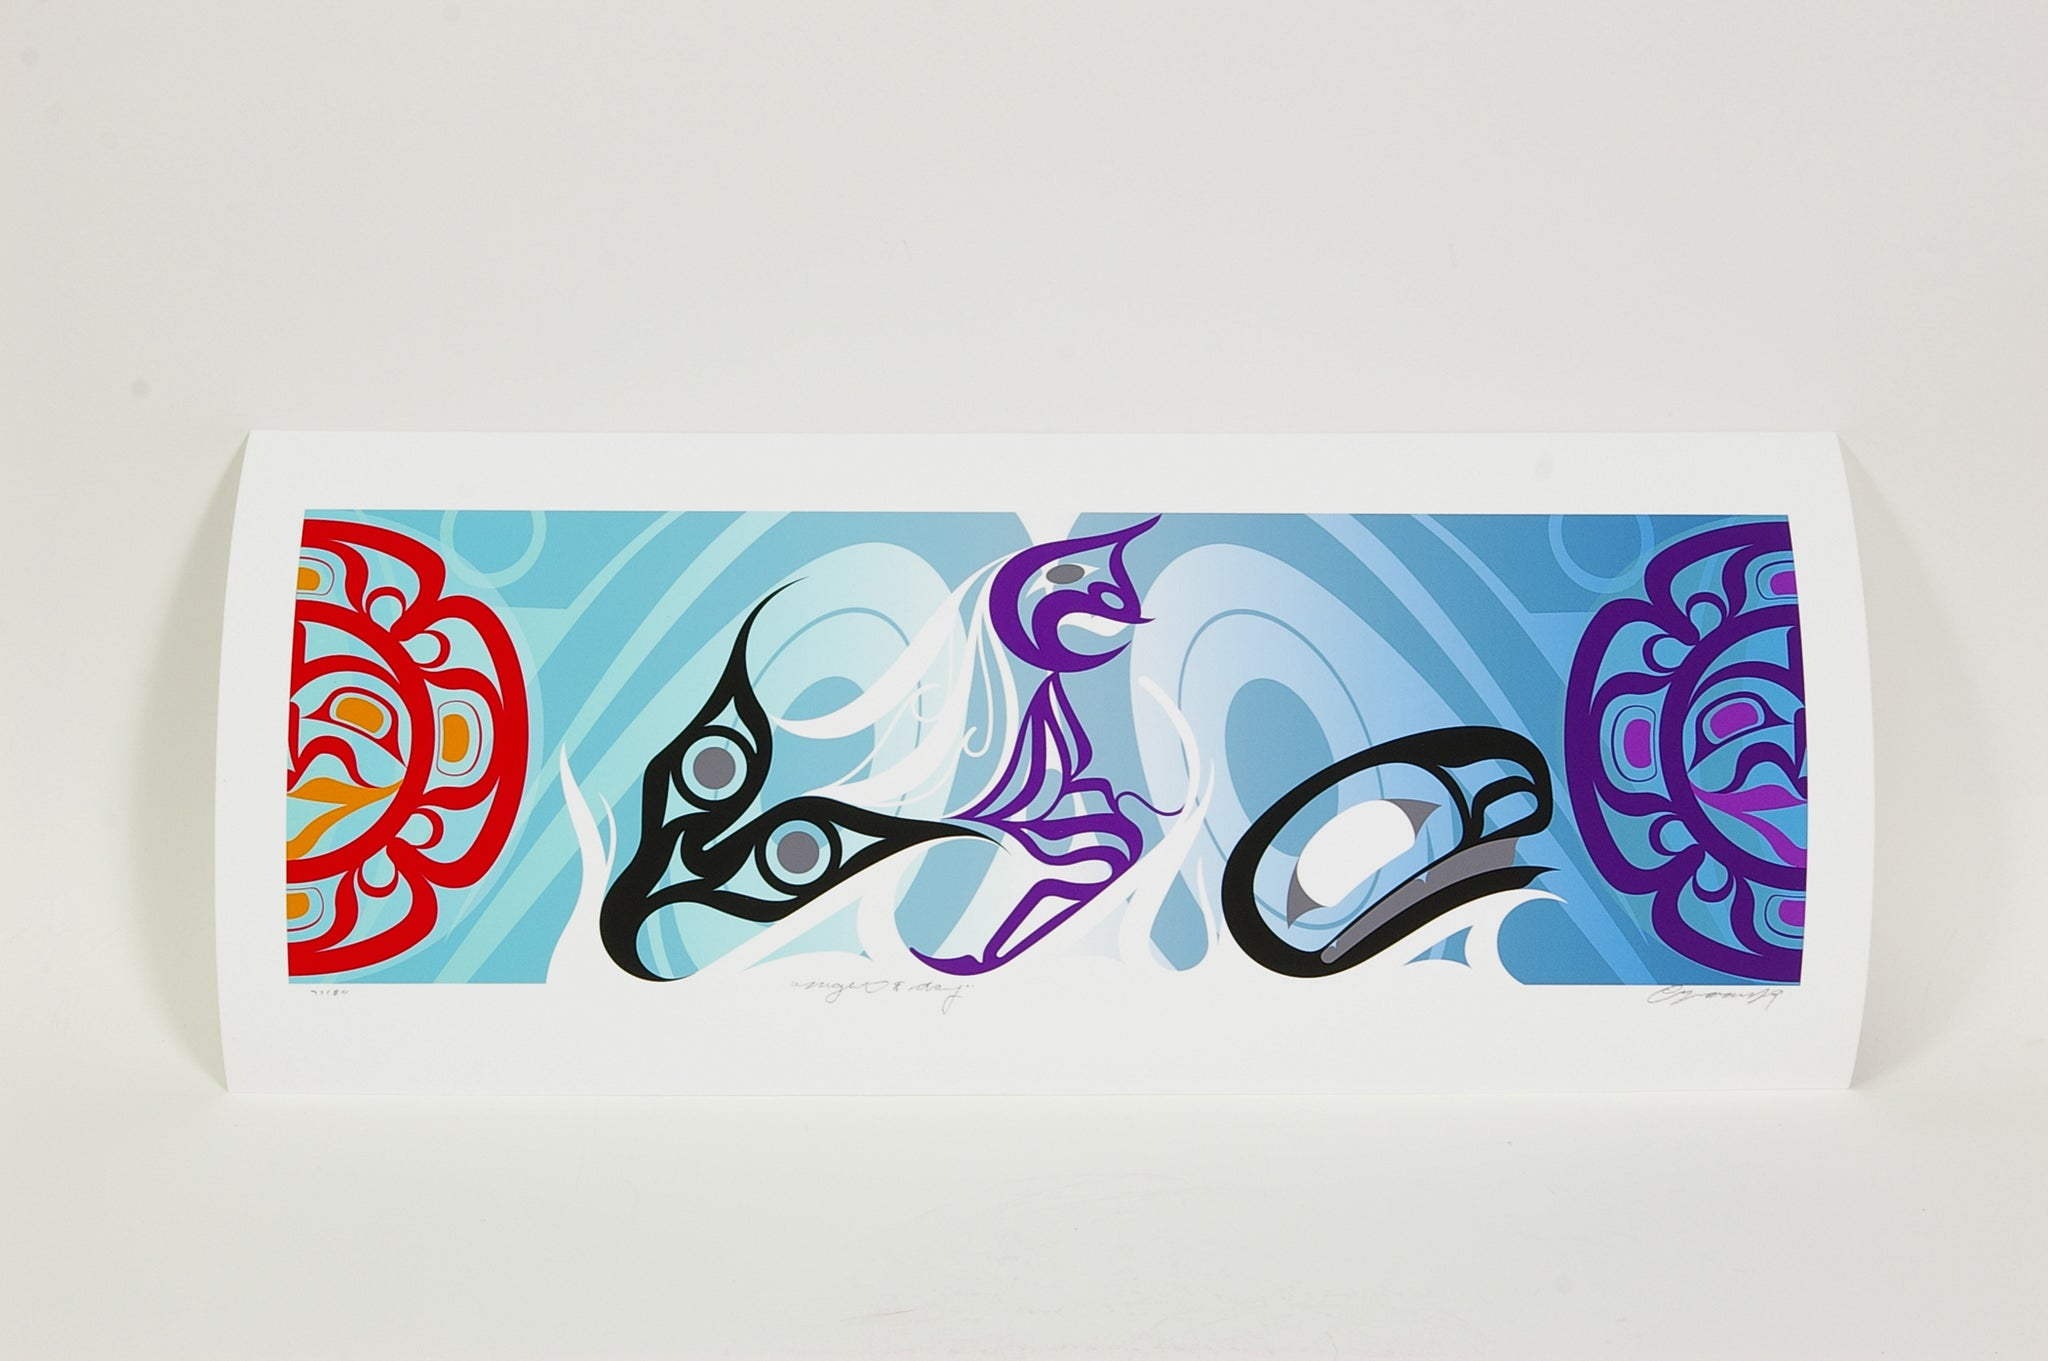 Night and Day by Andrew Dexel